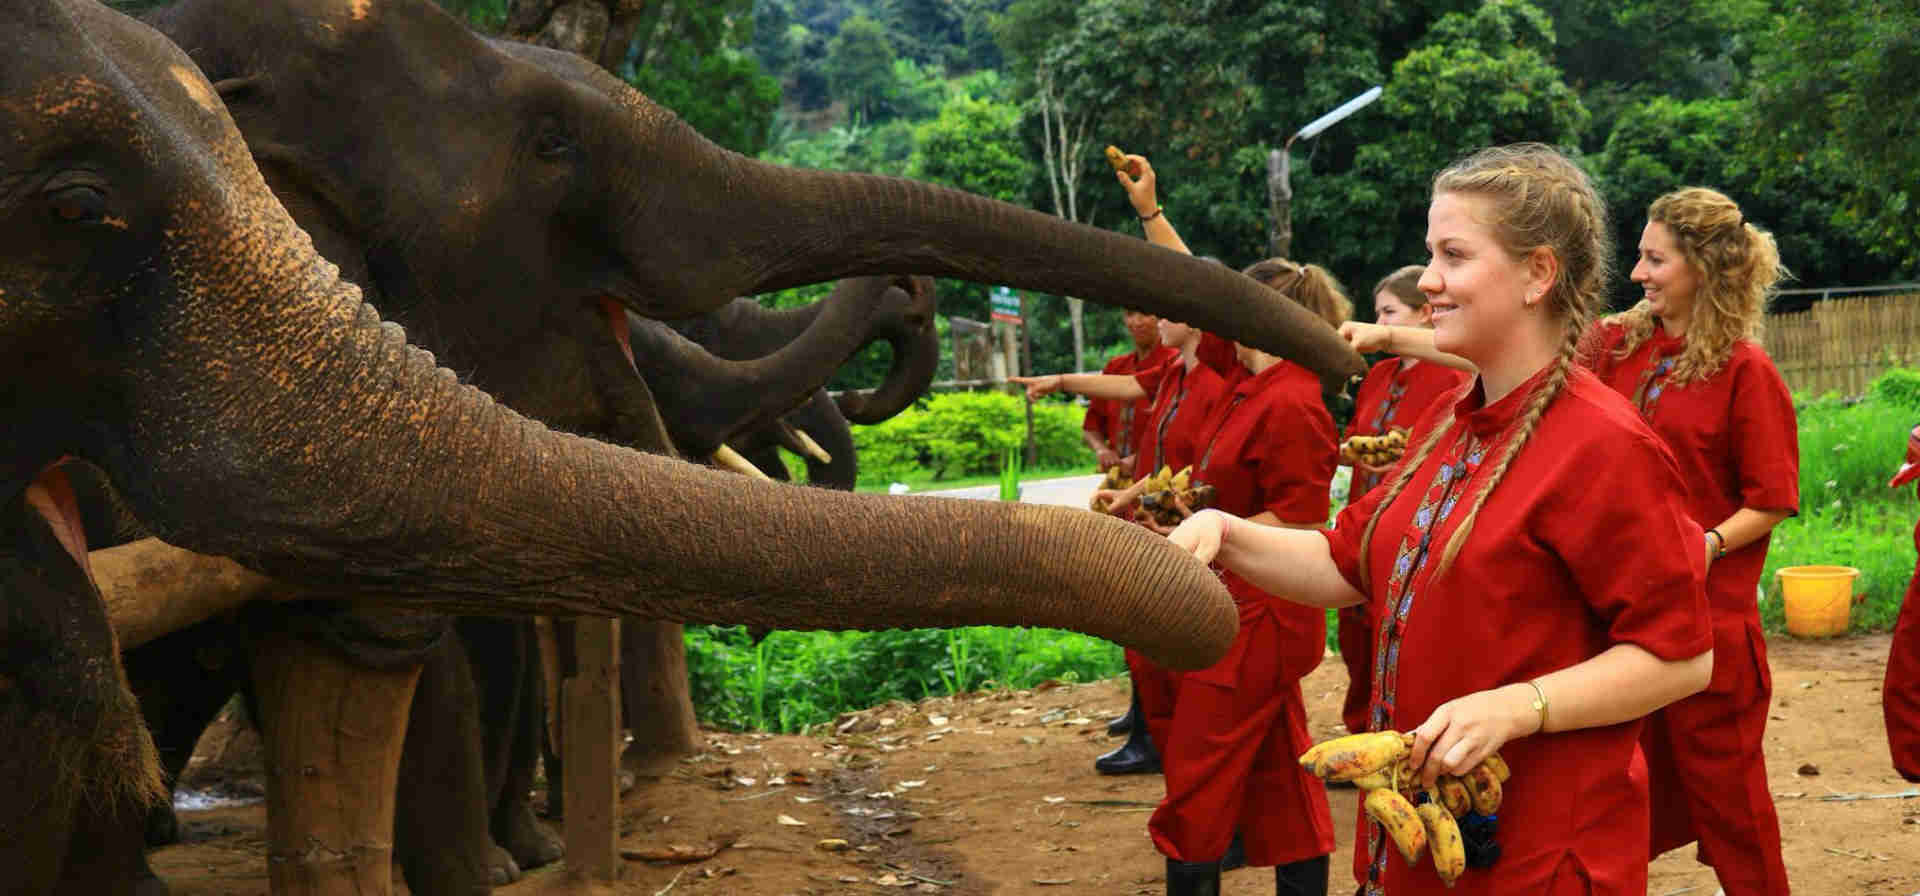 Ethical Elephant Interactions